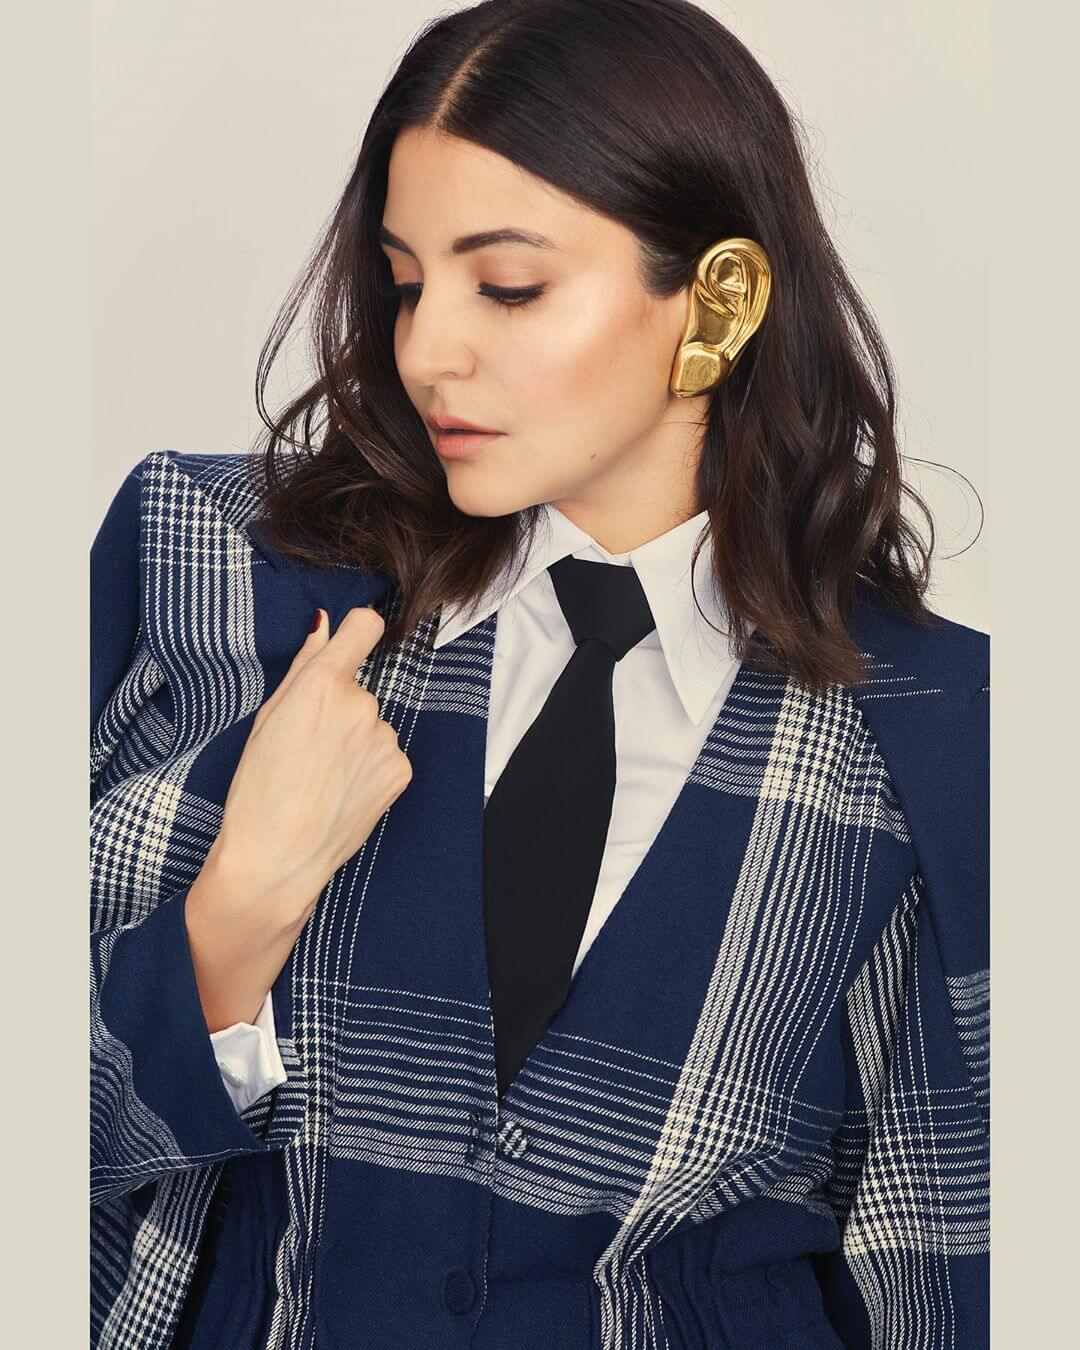 The Ear Cuffs That Became A News Overnight Anushka Sharma's Earring Designs